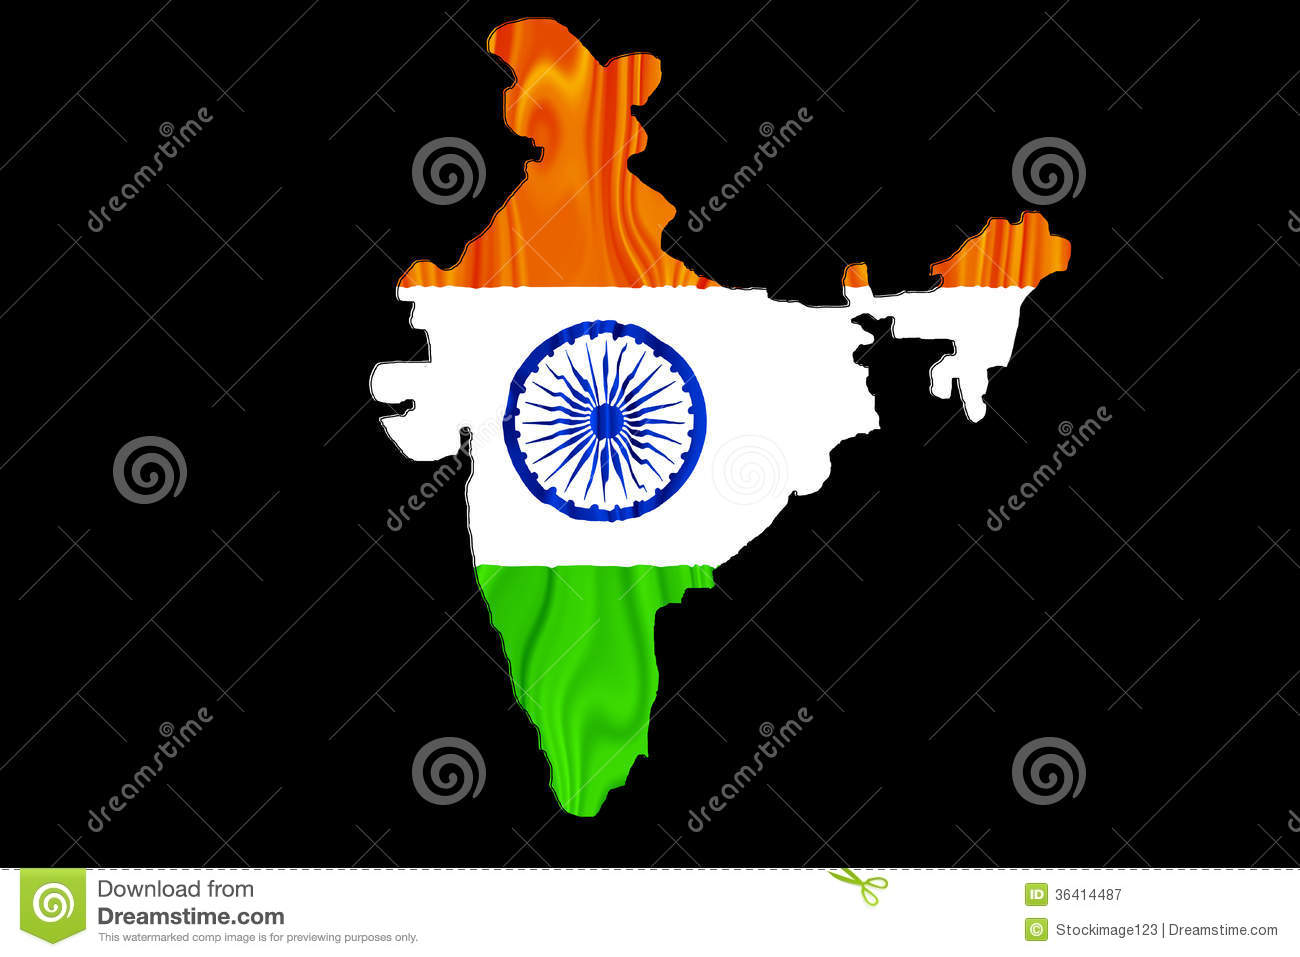 India Flag Black: Indian Map And Flag Royalty Free Stock Photography